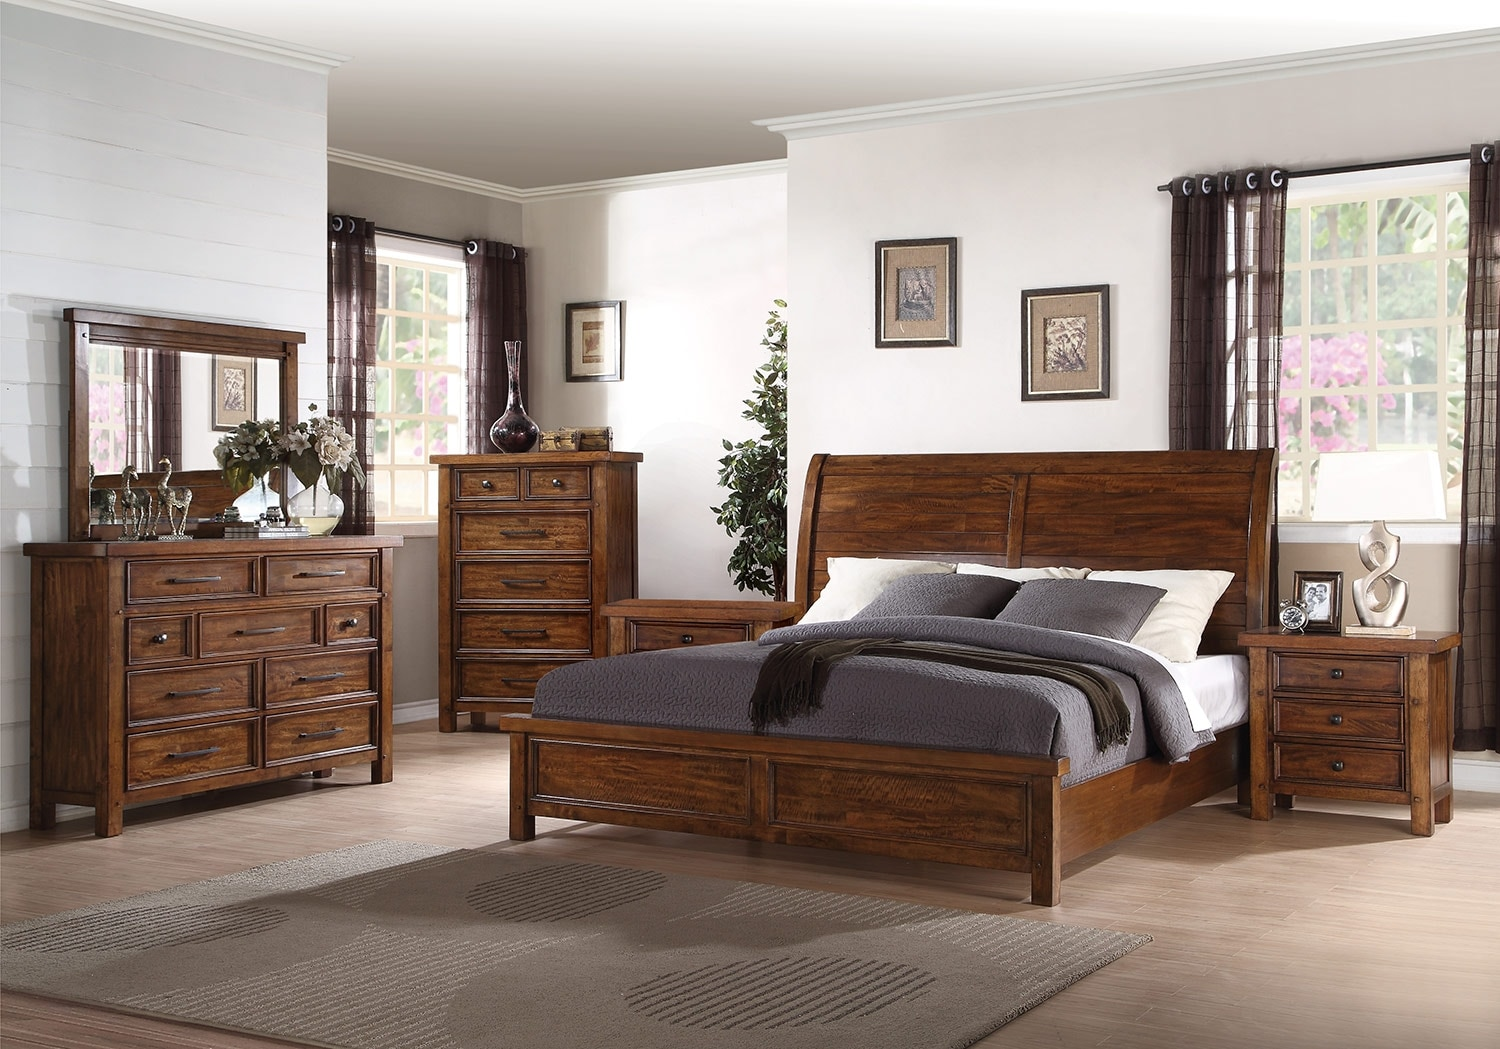 Bedroom Furniture - Sonoma 8-Piece King Bedroom Package – Light Brown